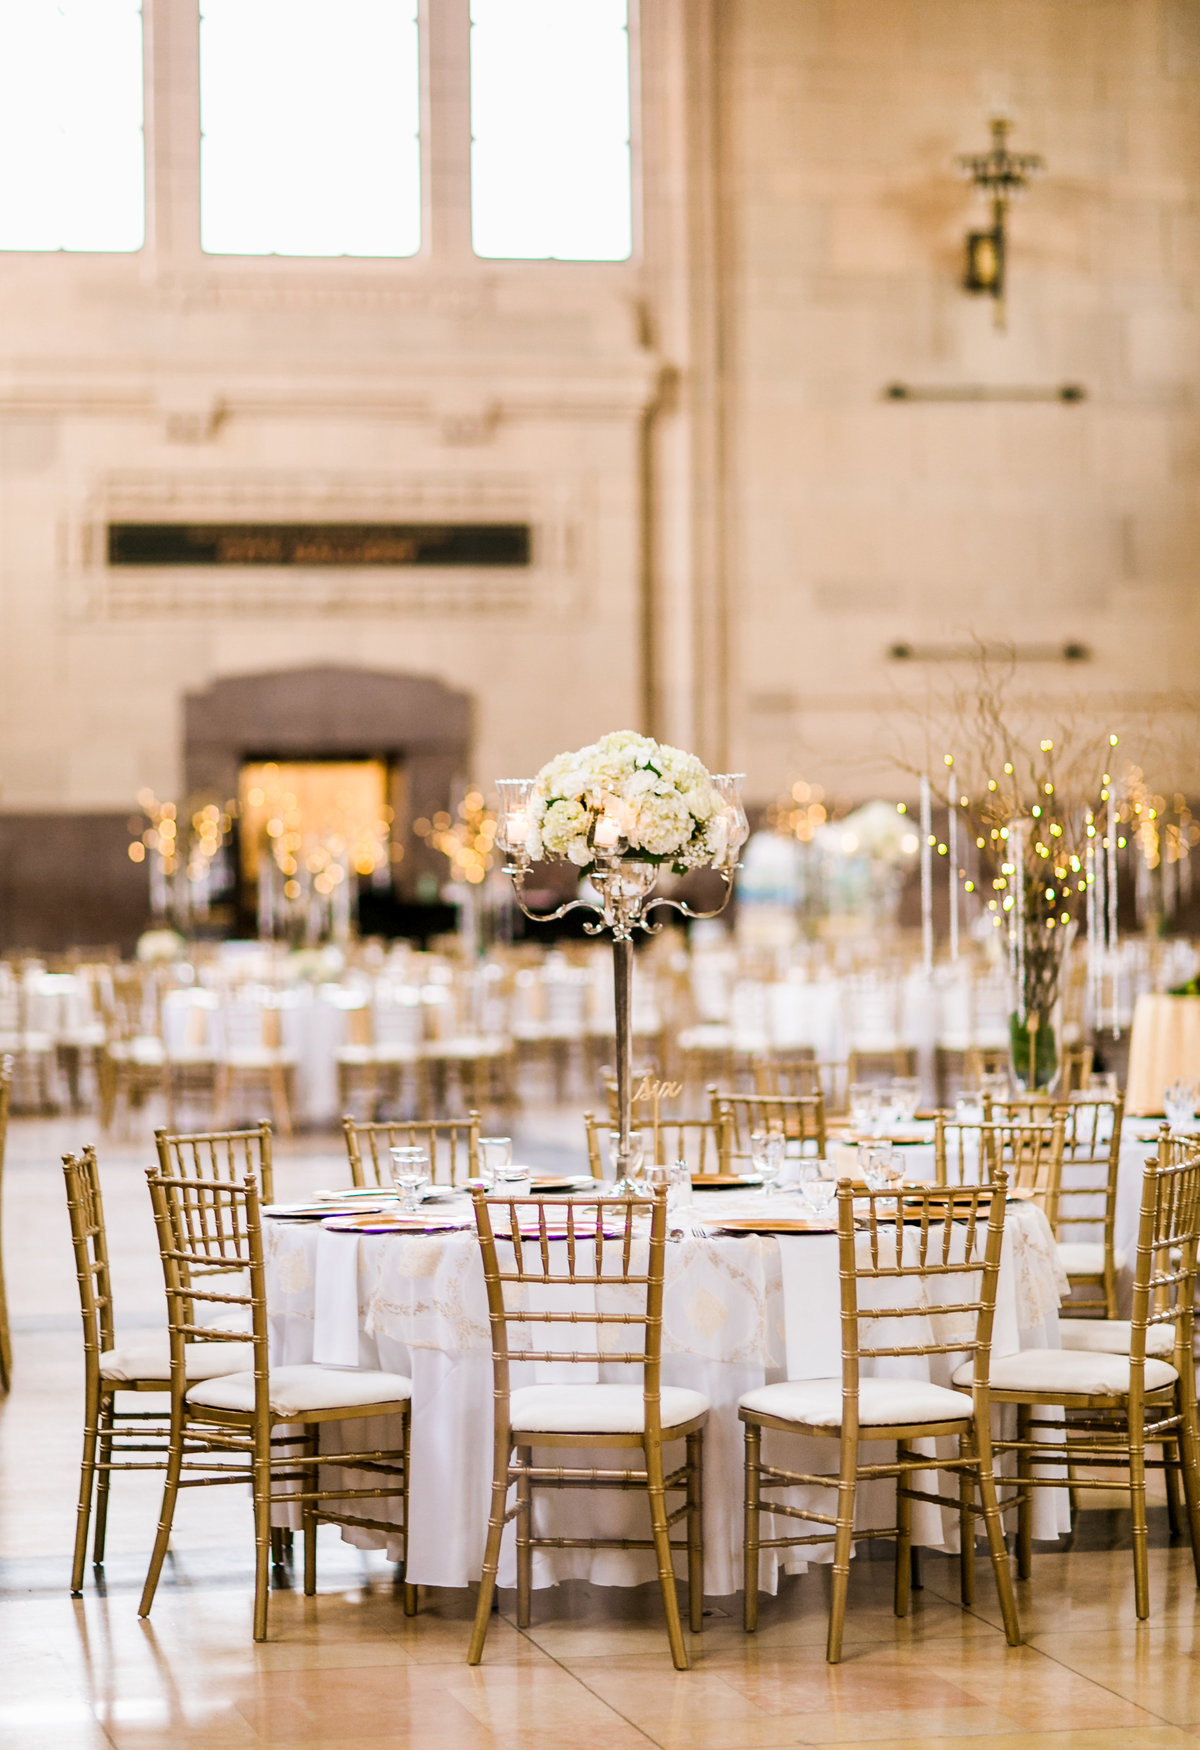 UnionStationKansascityWedding_BaileyTerry_CatherineRhodesPhotography-2262